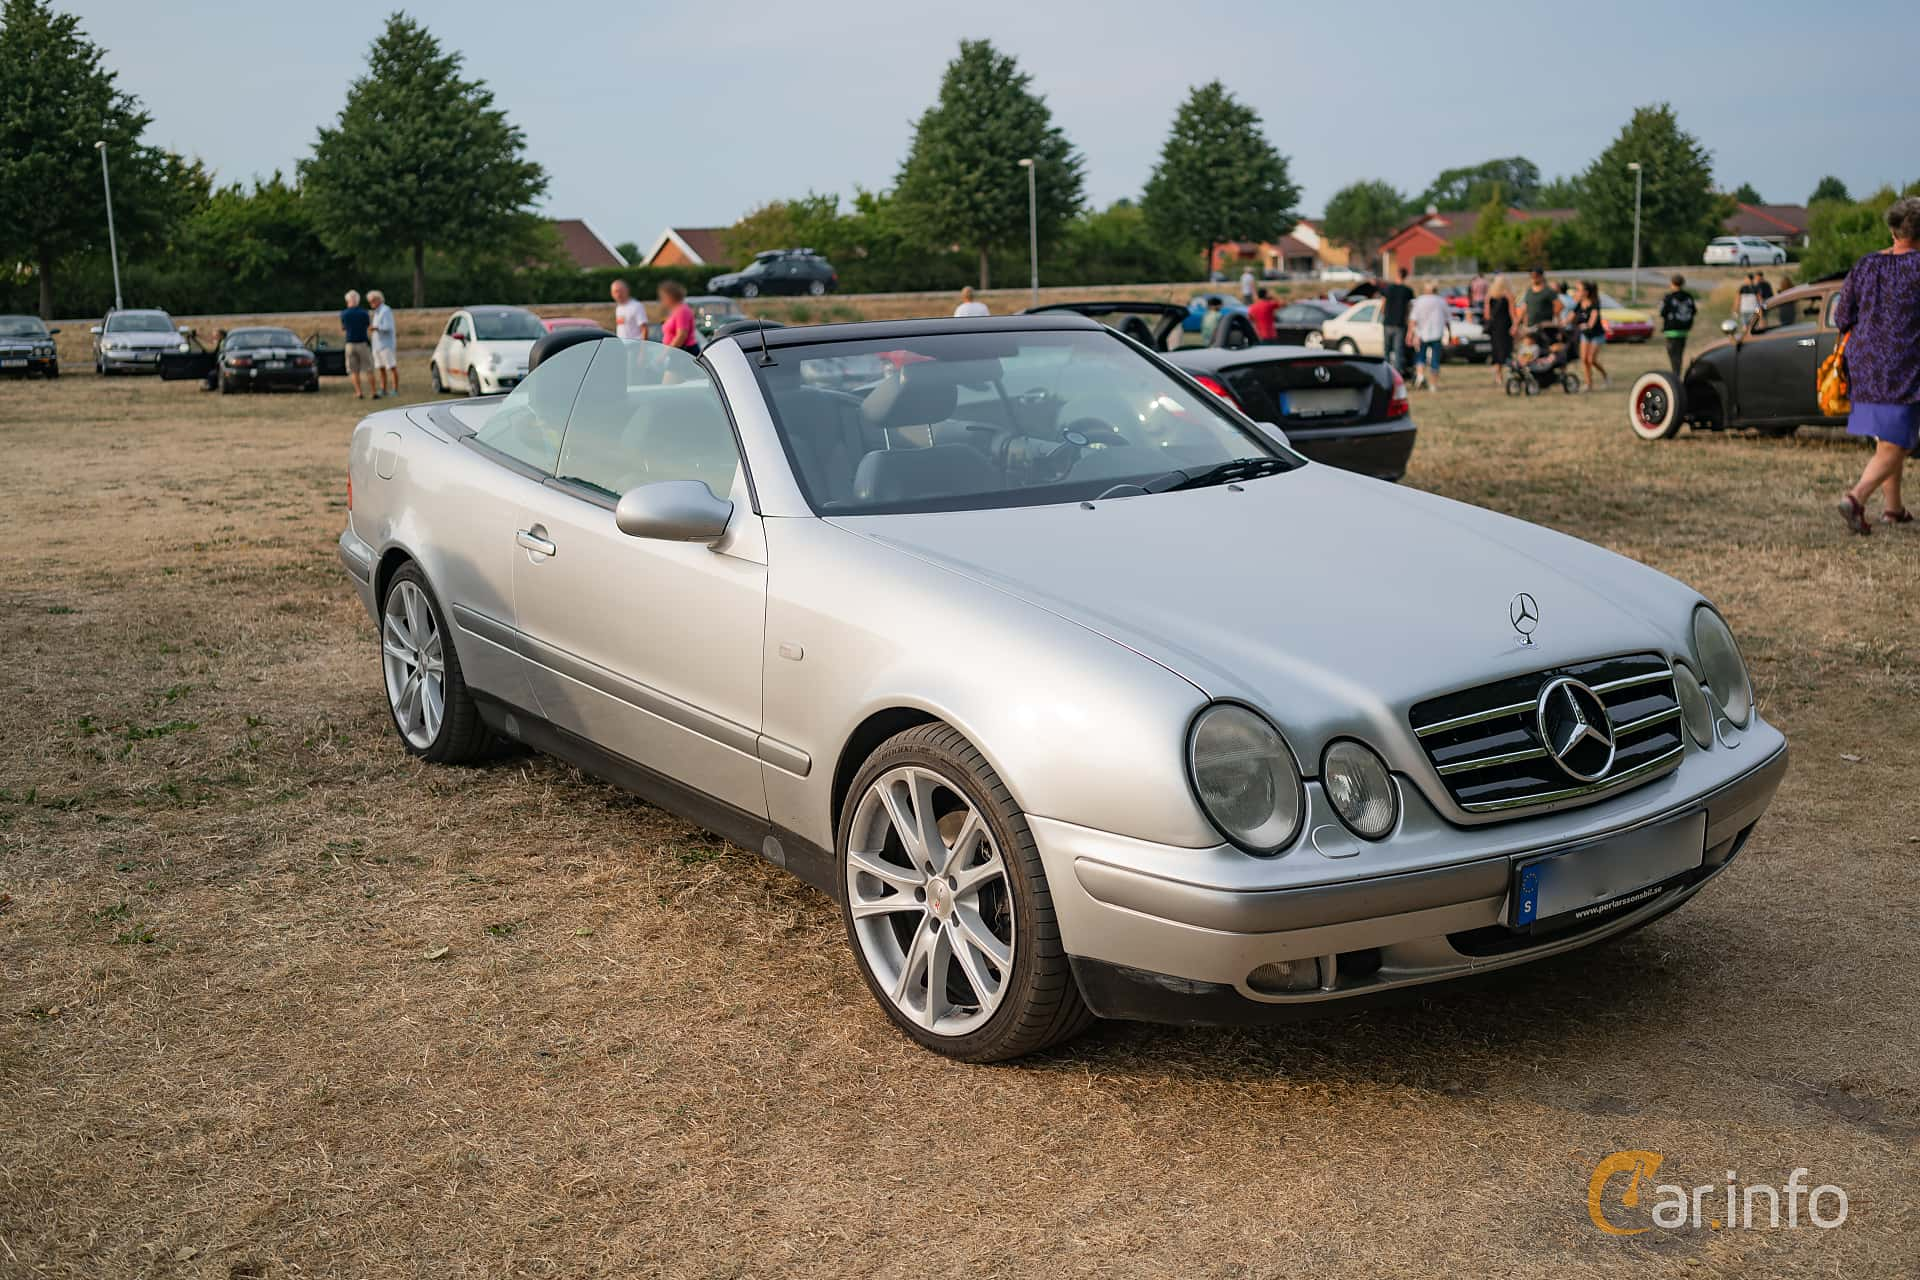 2 Images Of Mercedes Benz Clk 320 Cabriolet Automatic 218hp 2000 Front Side 218ps At